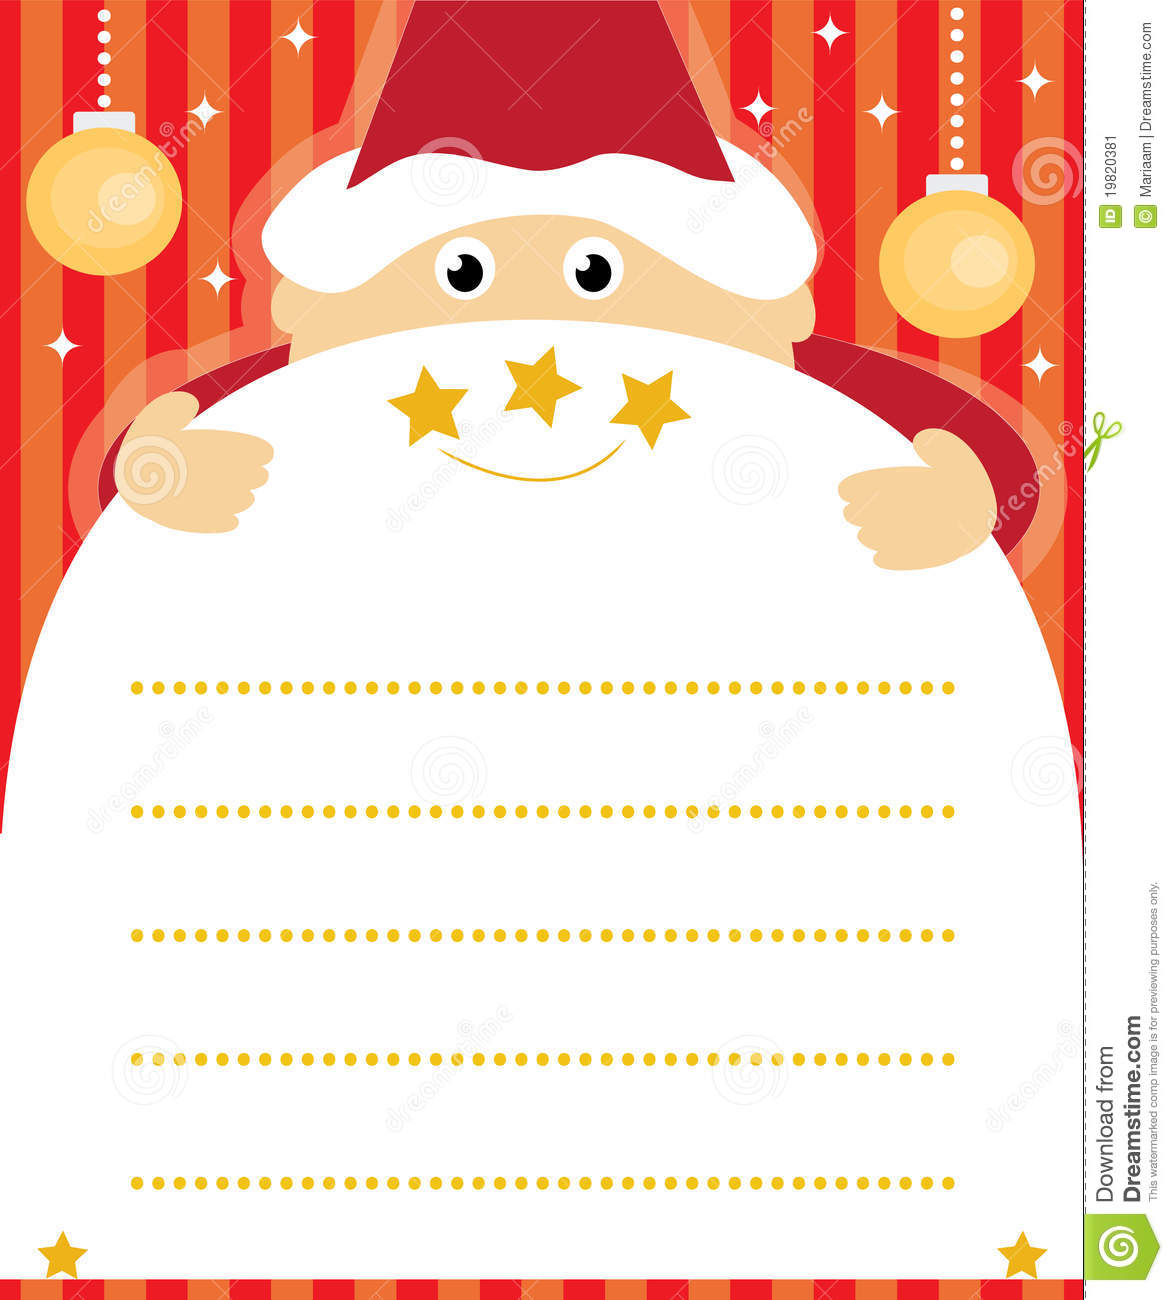 Santa claus list clipart image transparent download Santa Claus Wish List Stock Image - Image: 19820381 image transparent download